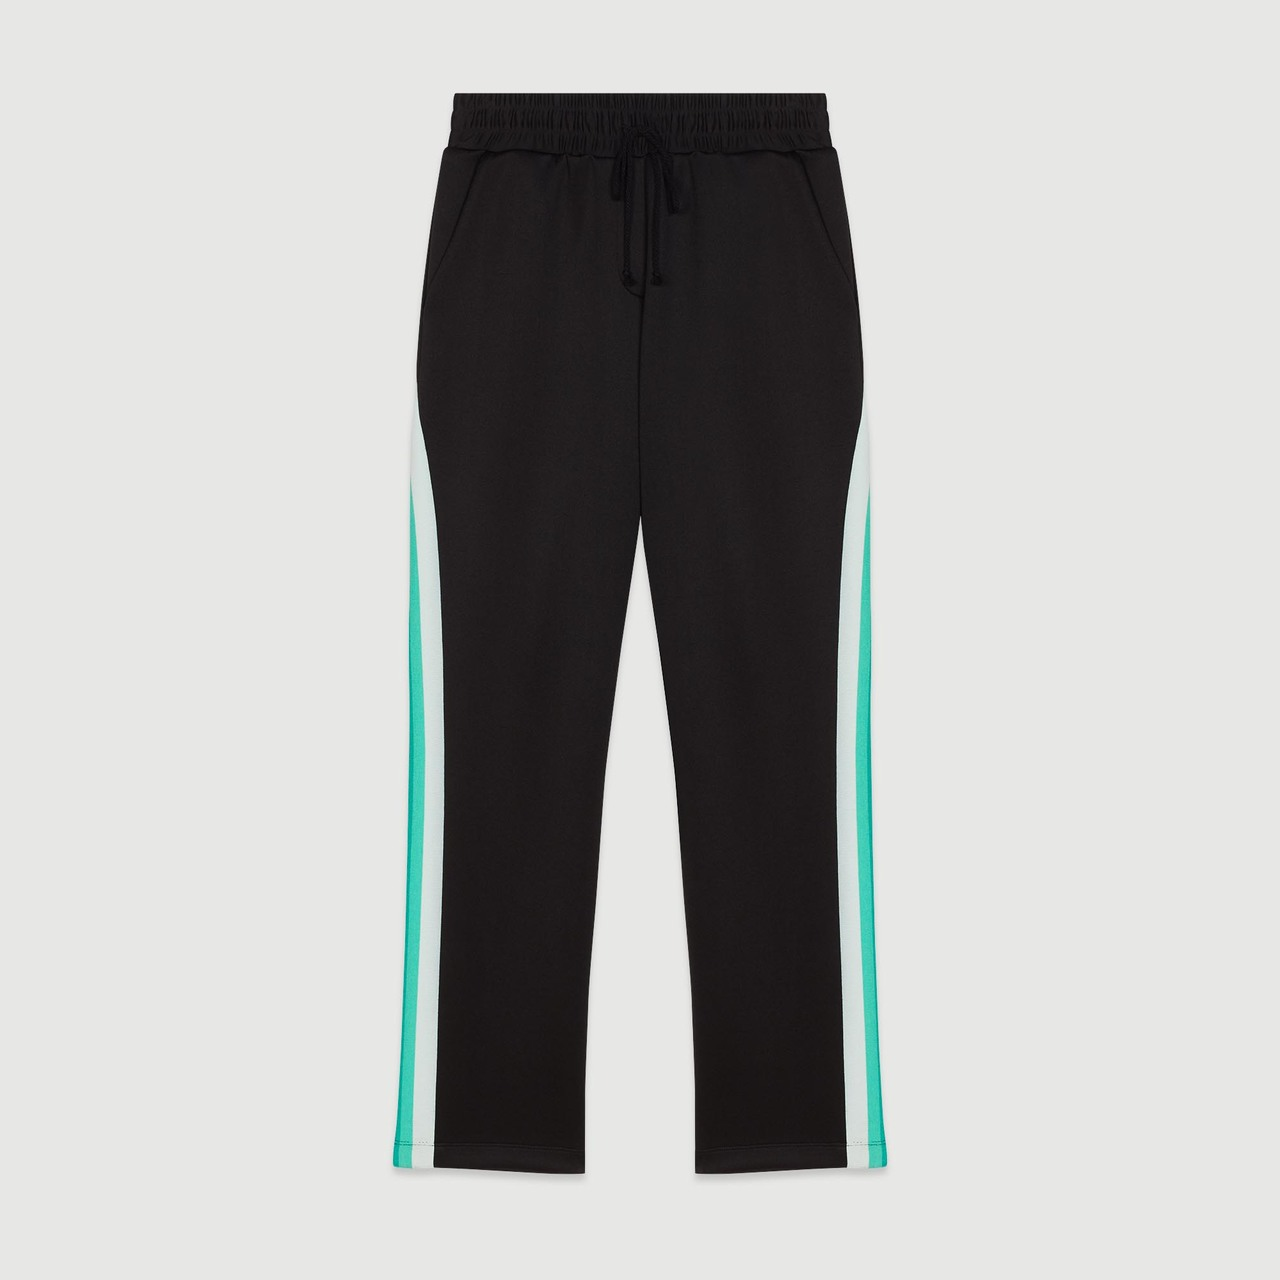 Sport Pants With Contrasting Side Bands - Black